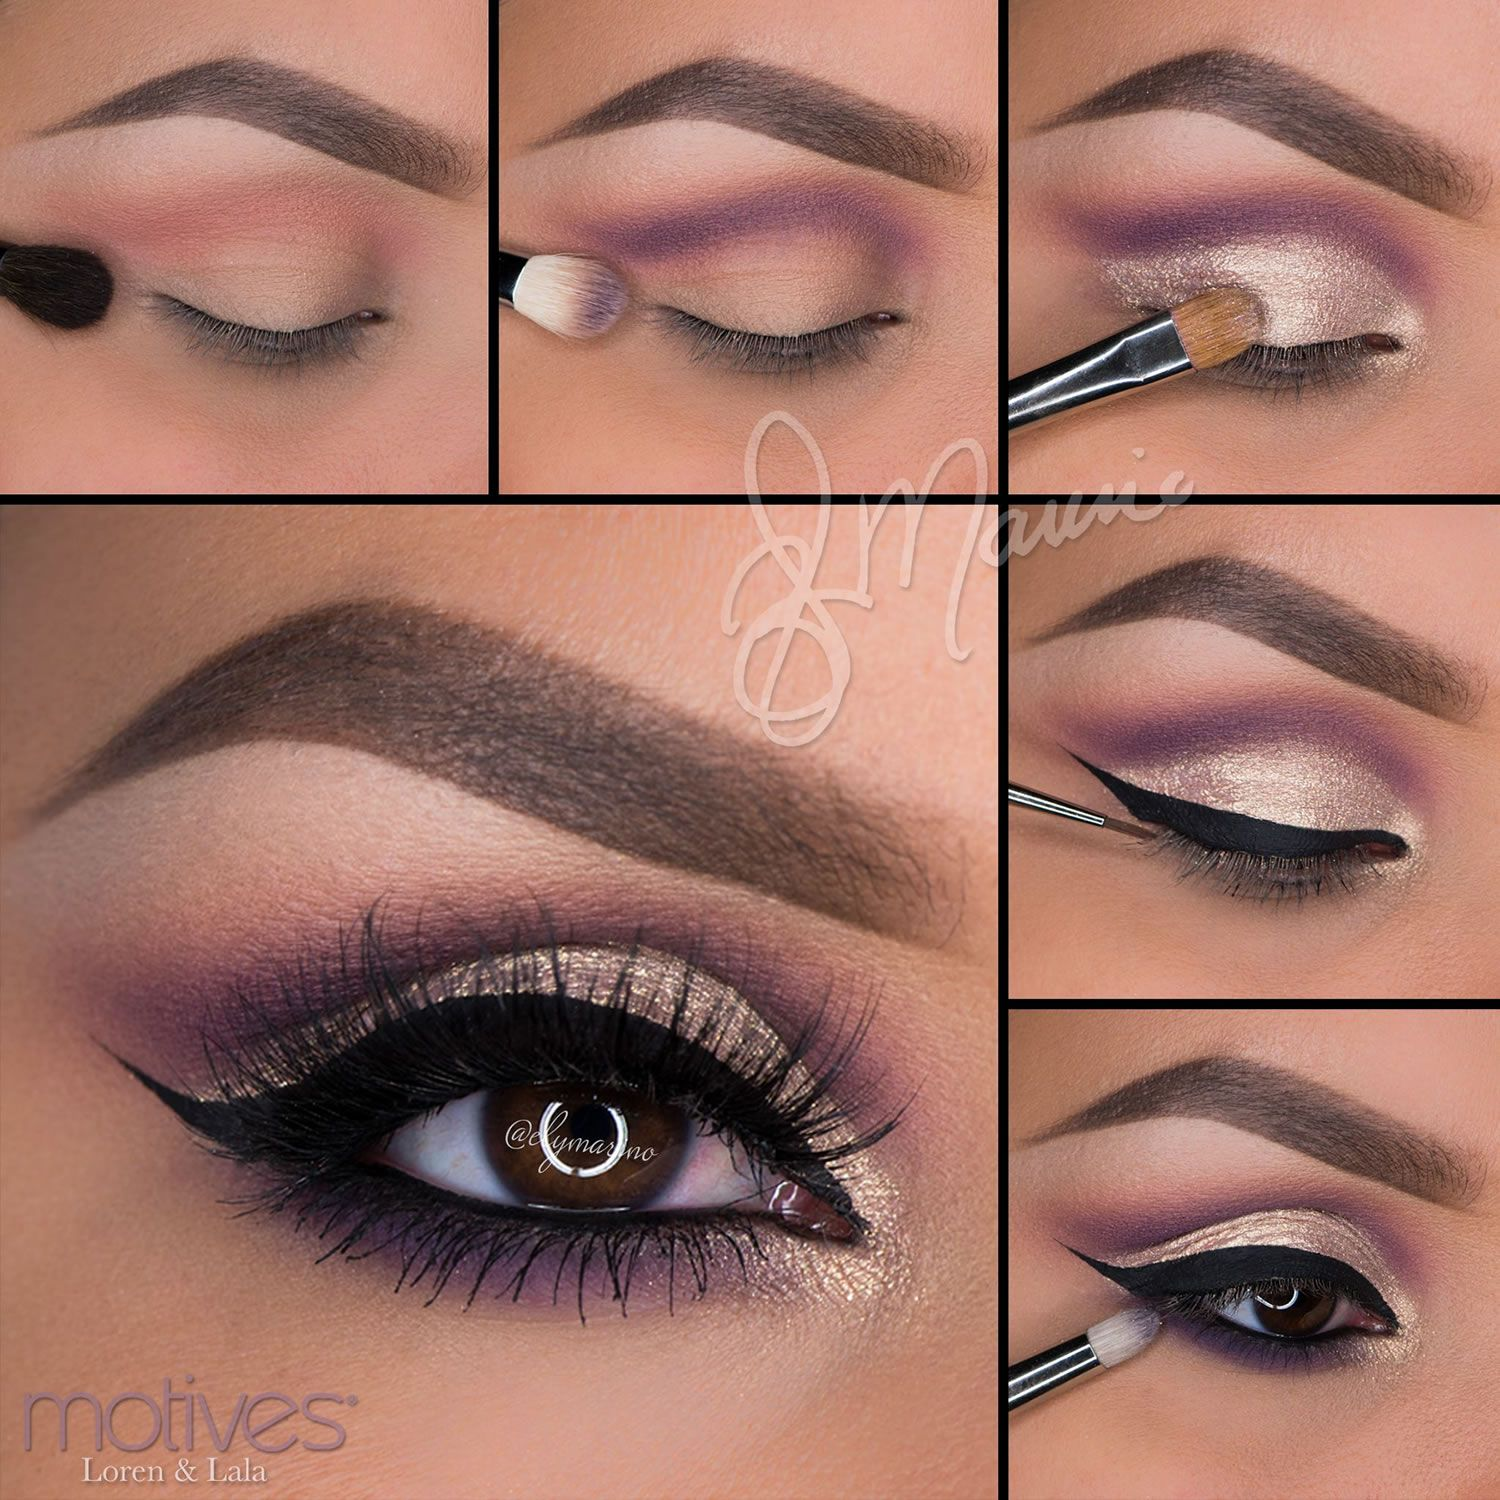 Here is another gorgeous look by professional makeup artist Ely ...